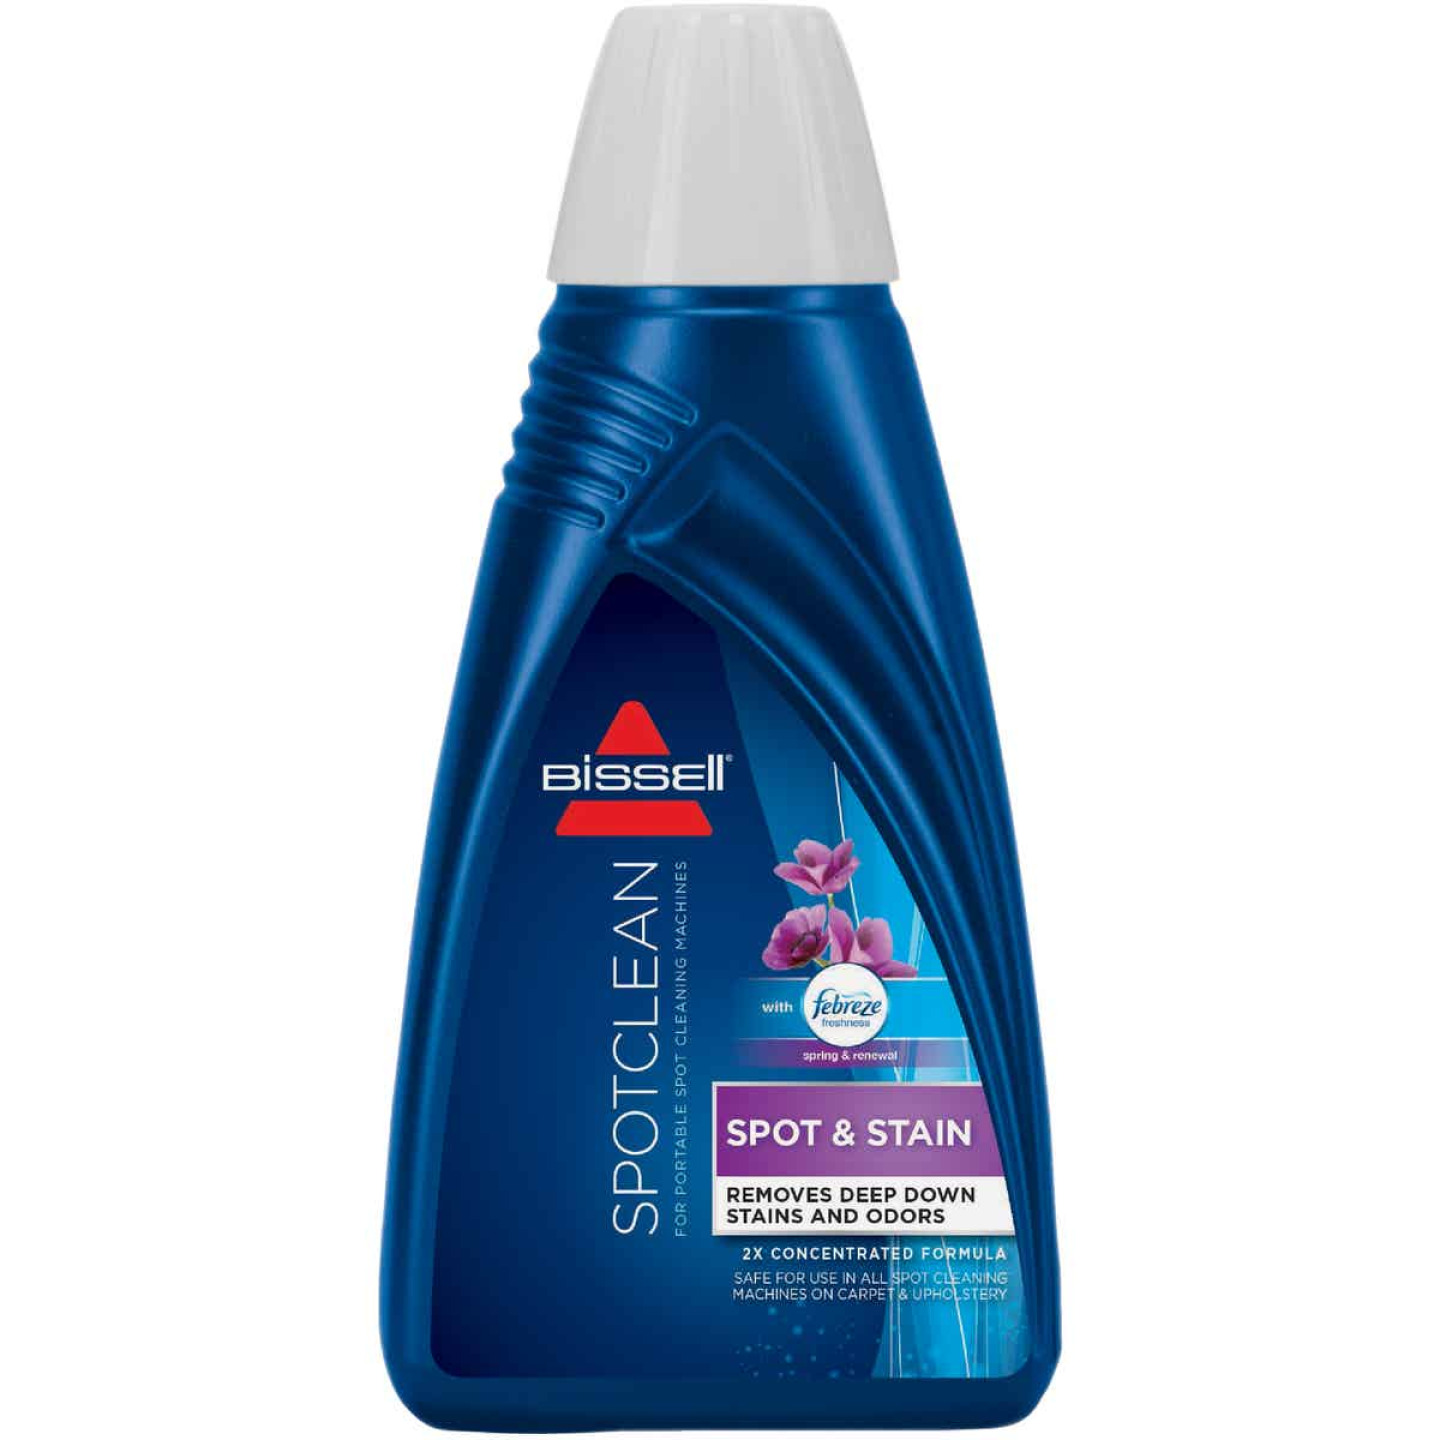 Bissell SpotClean 32 Oz. Febreze Spring & Renewal Spot & Stain Remover Image 1